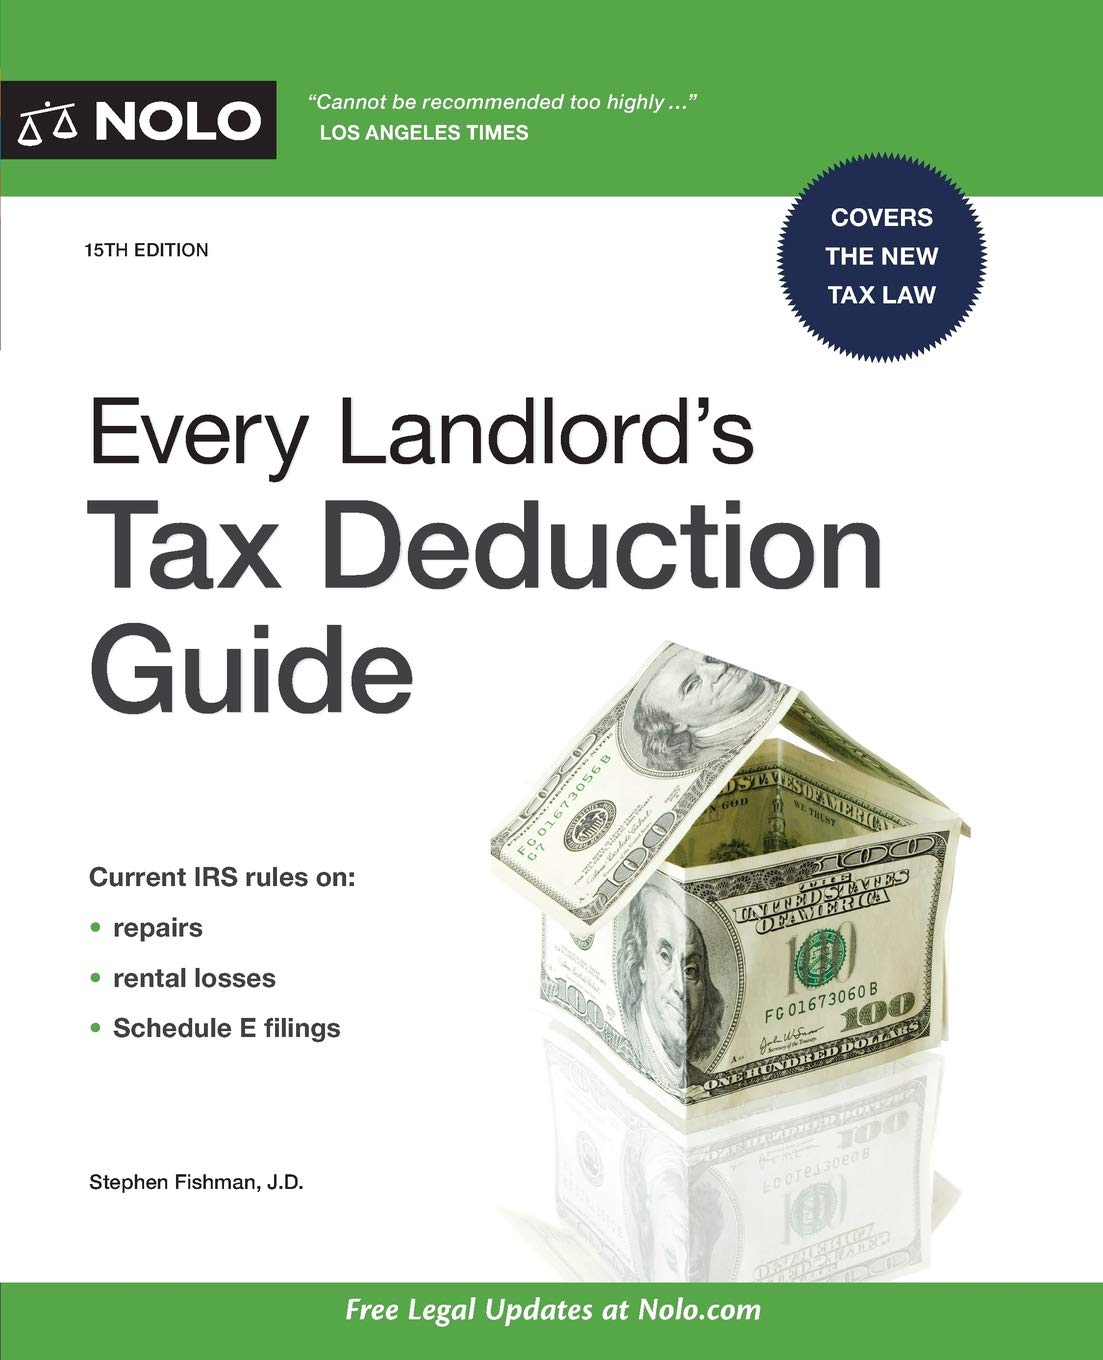 Every Landlord's Tax Deduction Guide by NOLO